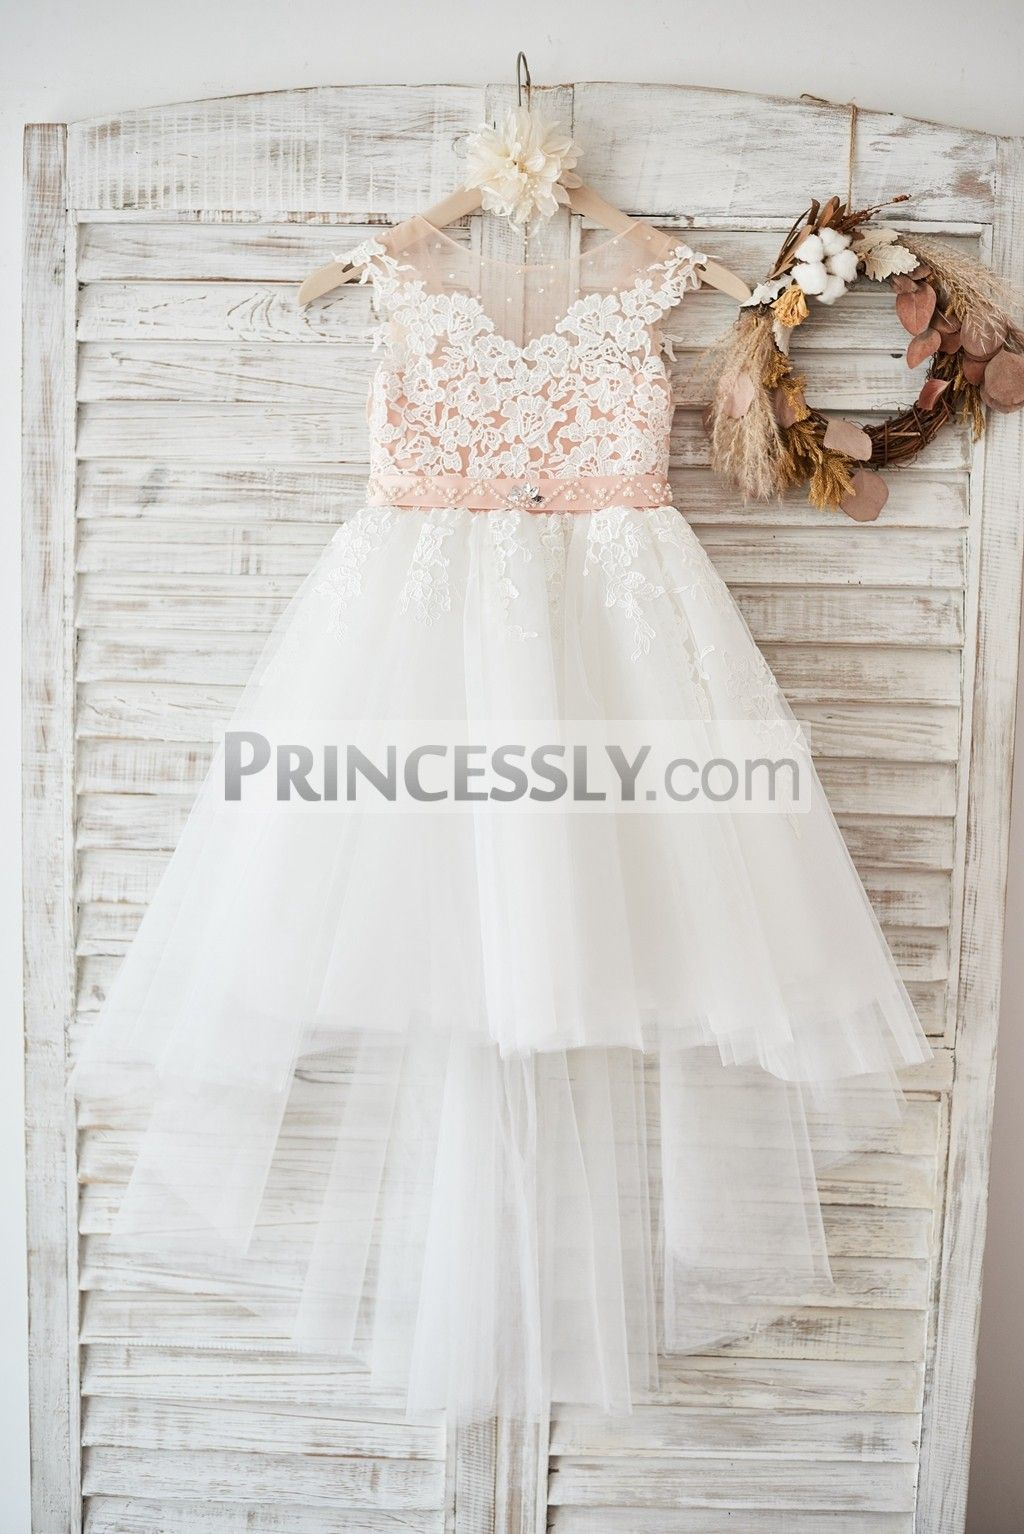 b7ac2b758 This dress is made of high quality lace and tulle fabric; Illusion nude  tulle neckline